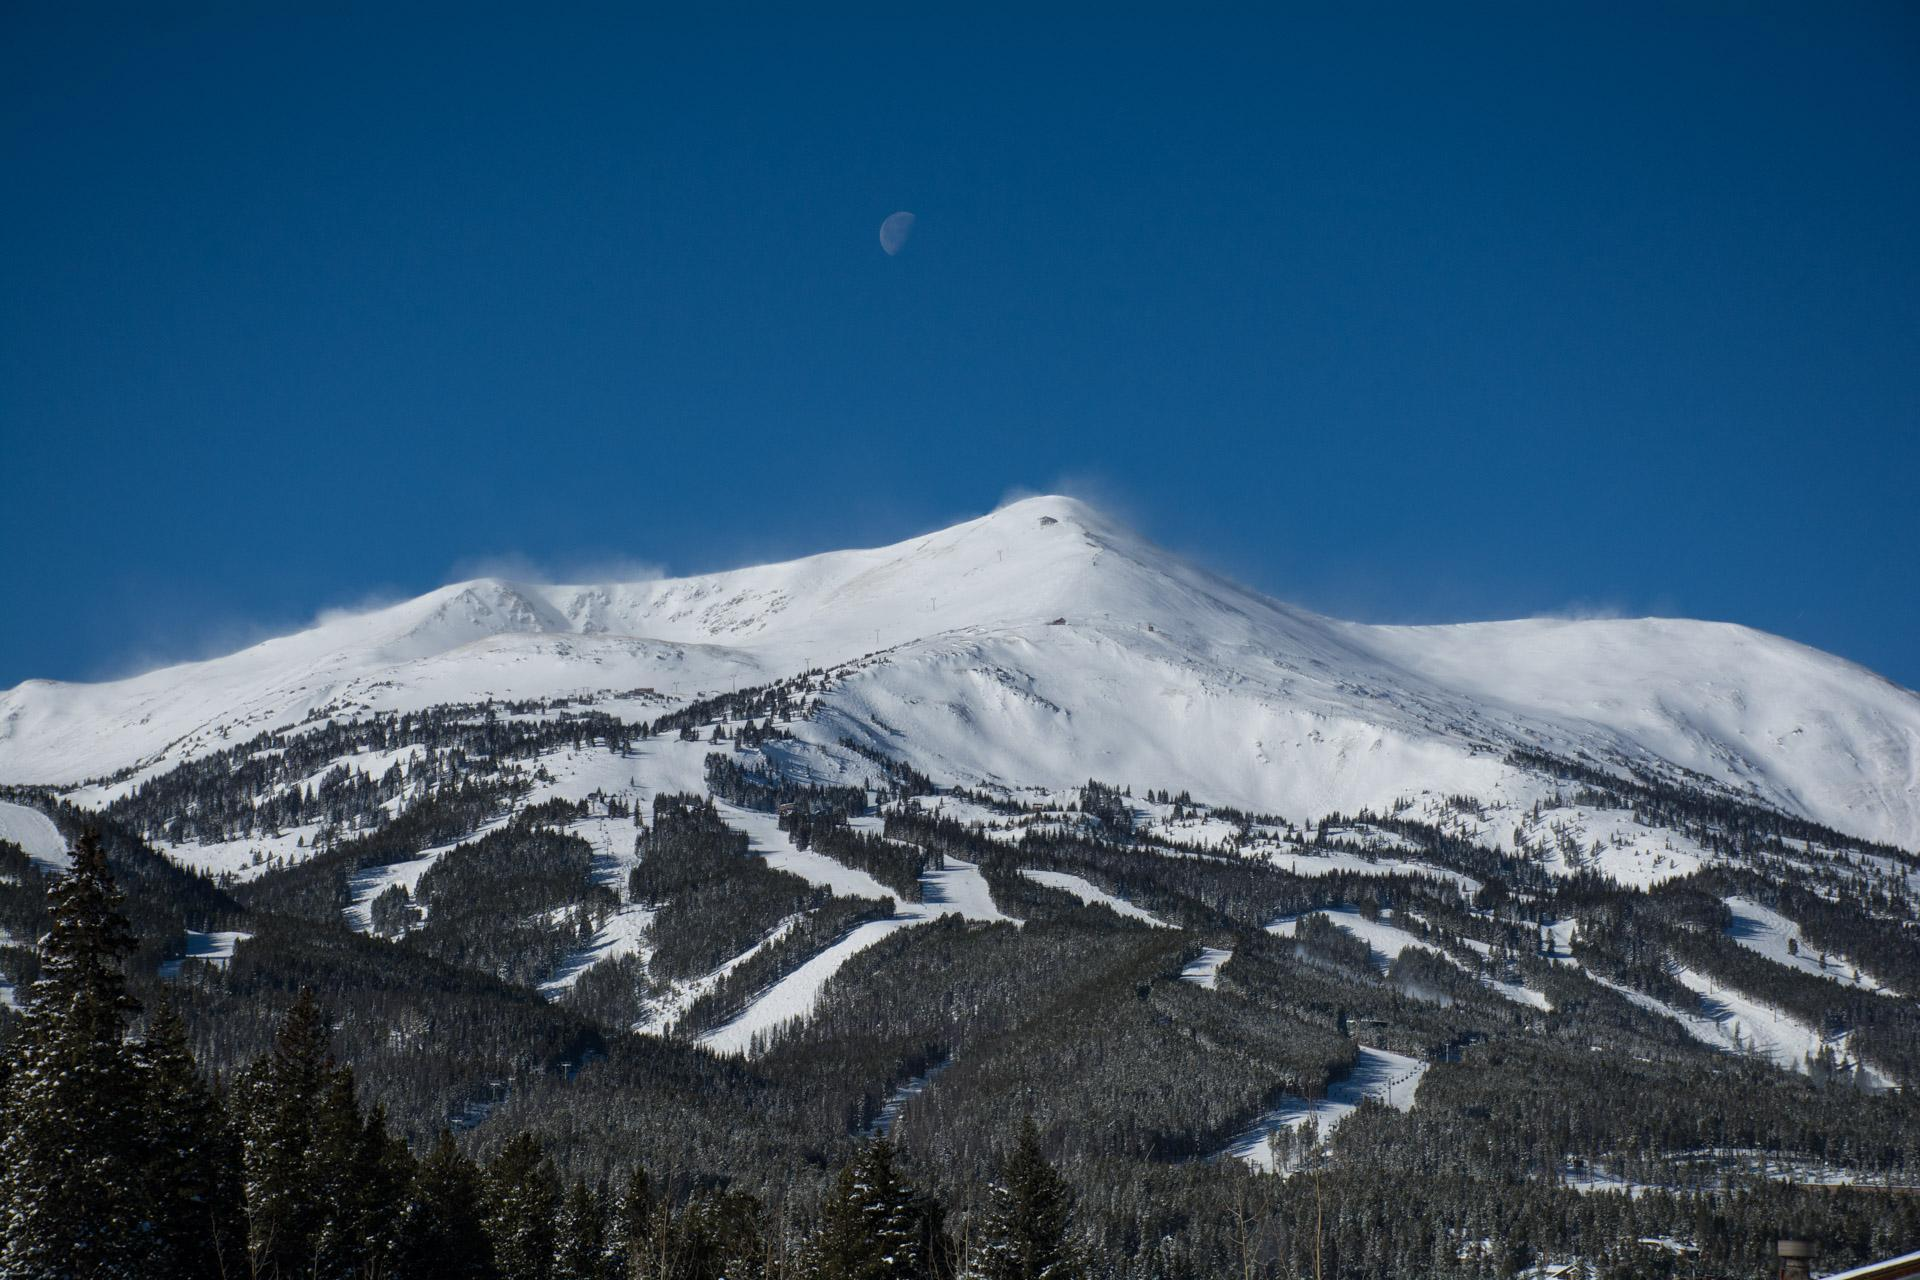 Moon over the Breckenridge Ski Resort, 2017